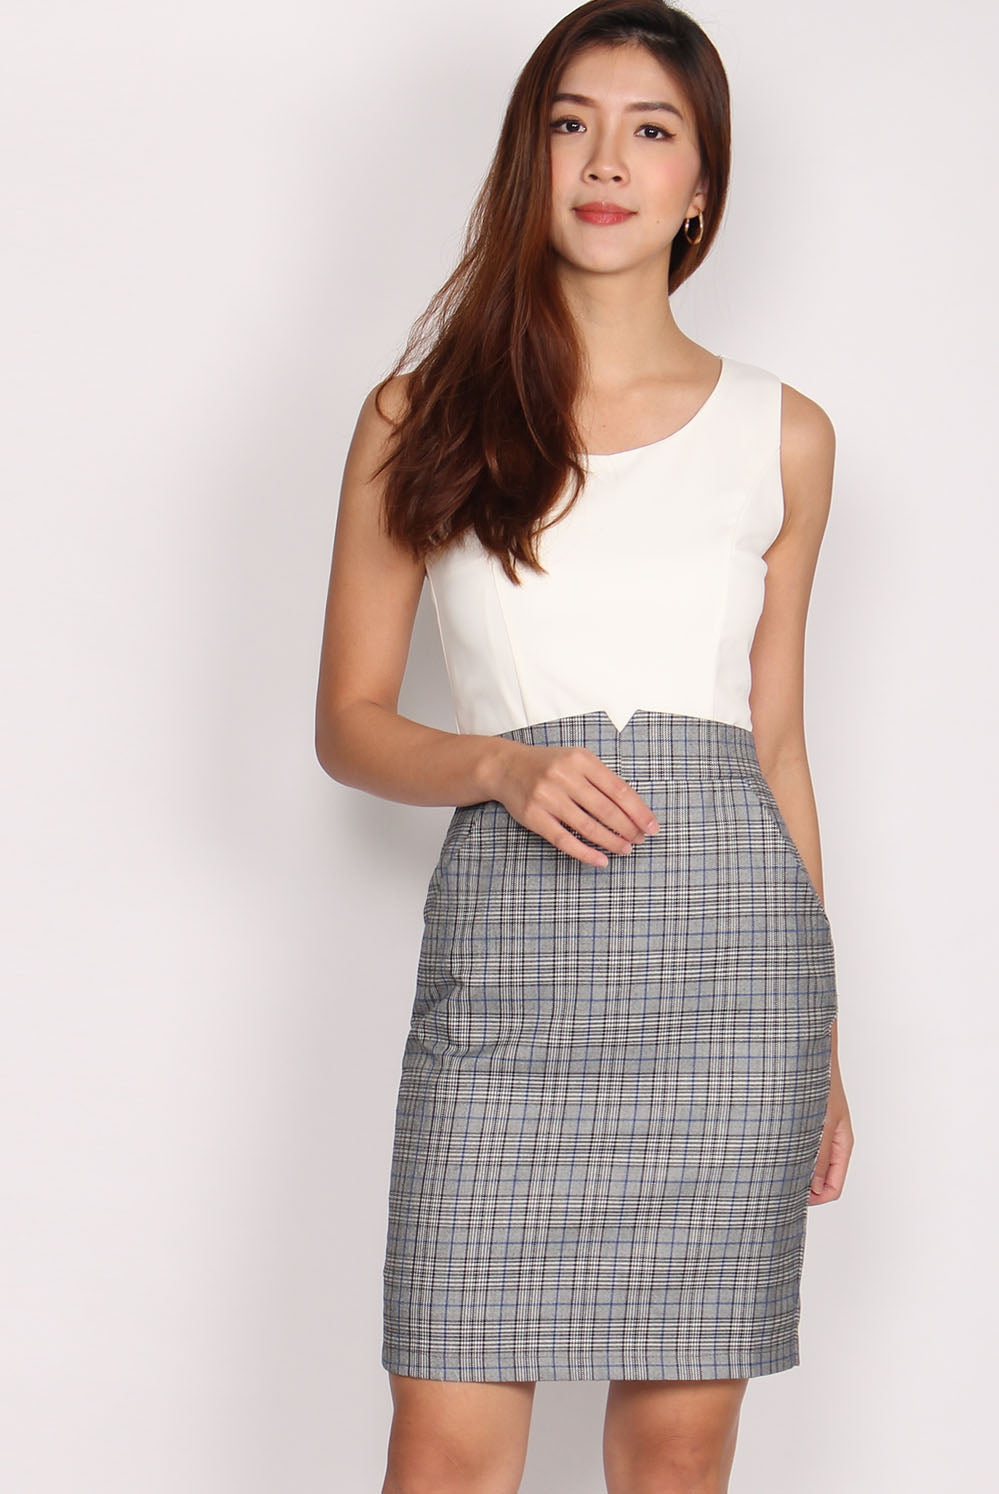 Bayard Tux Paperbag Dress In Glenn Plaids